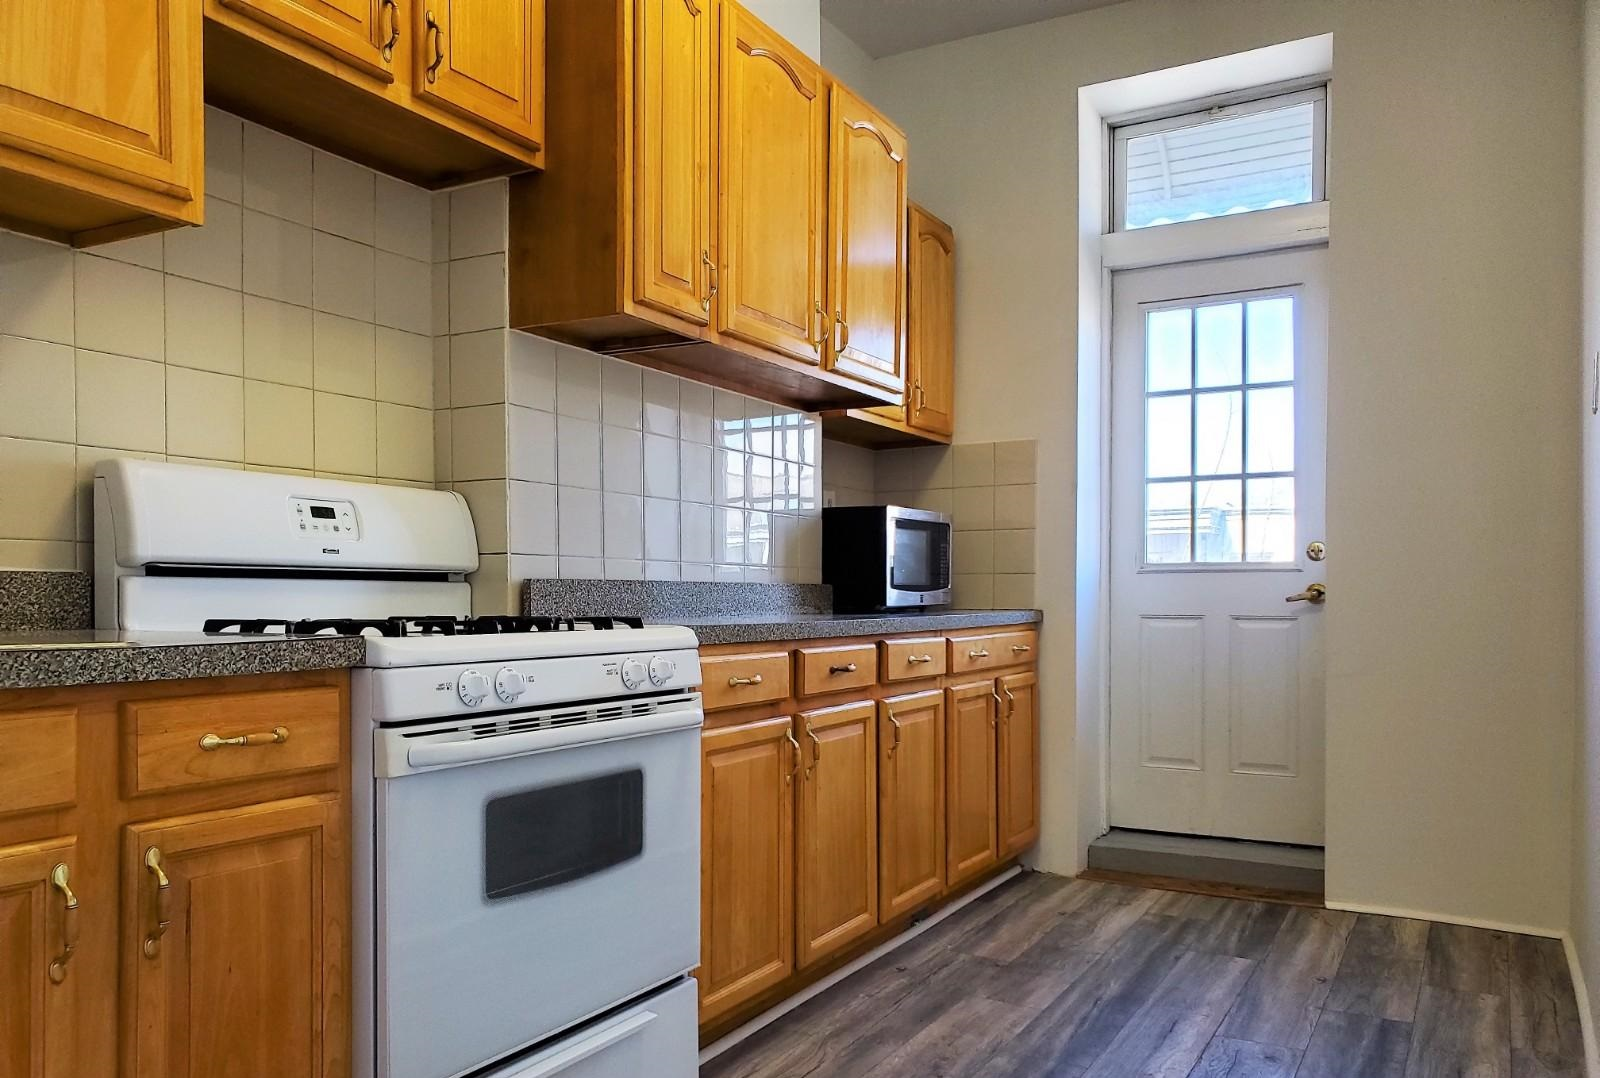 Freshly Painted 3 Bedroom Apartment for Rent in Ridgewood. Features Sunny Living Room, Kitchen with Balcony Entrance, 1 Newly Renovated Bathroom, and 1 Home Office. Hardwood Flooring Throughout. Heat and Water is Included. Conveniently Located Near M, L Train, Q58,Q55 Bus, and Shops.